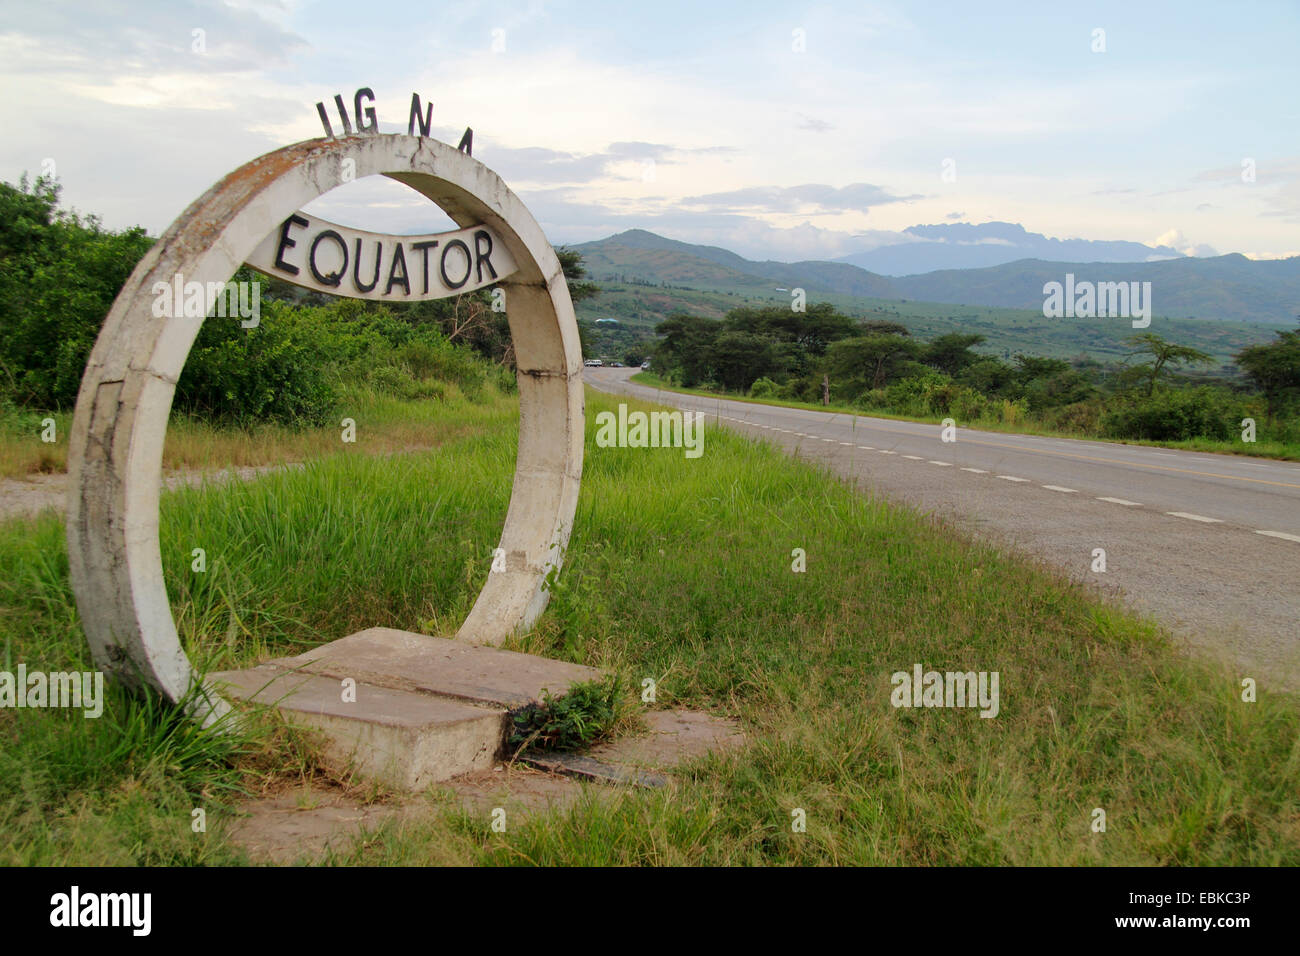 sign equator at a stree boarder, Uganda - Stock Image